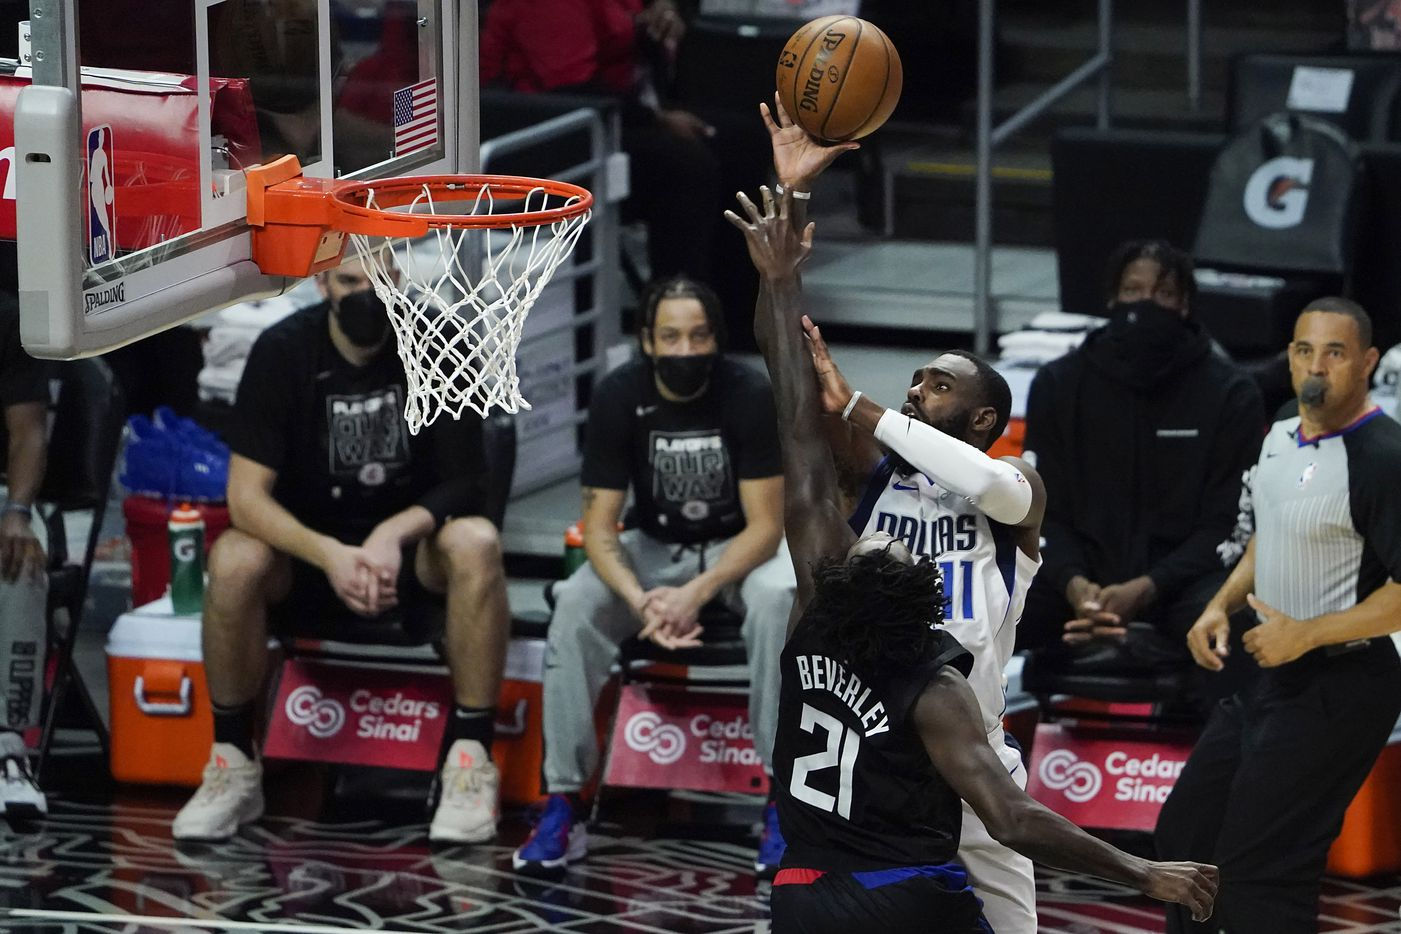 Dallas Mavericks forward Tim Hardaway Jr. (11) shoots over LA Clippers guard Patrick Beverley (21) during the second half of an NBA playoff basketball game at Staples Center on Tuesday, May 25, 2021, in Los Angeles. The Mavericks won the game 127-121.